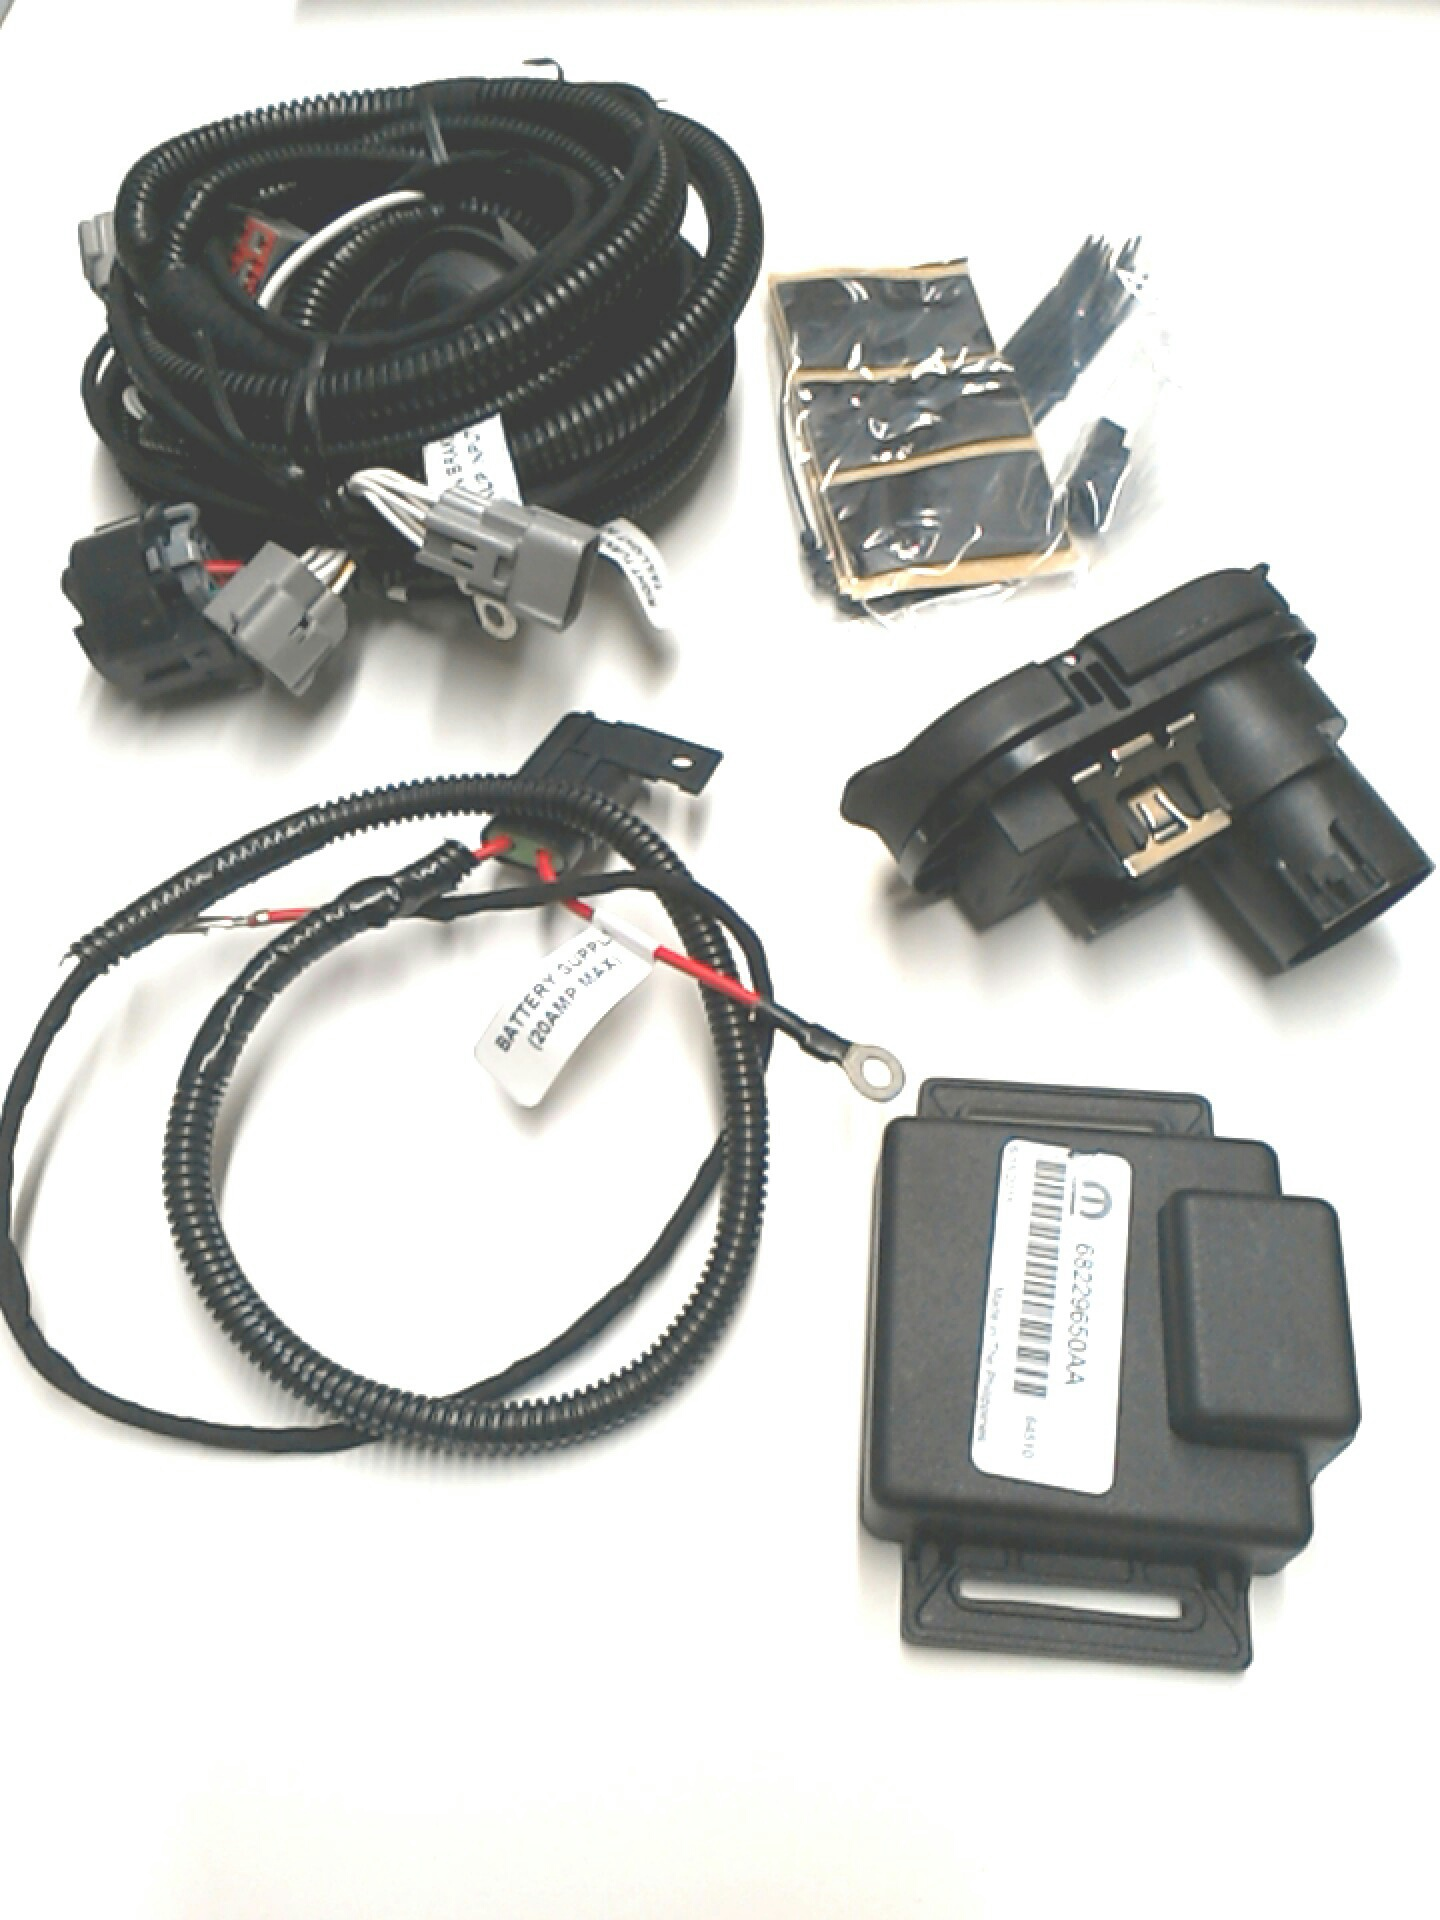 Ac chrysler trailer tow wiring harness